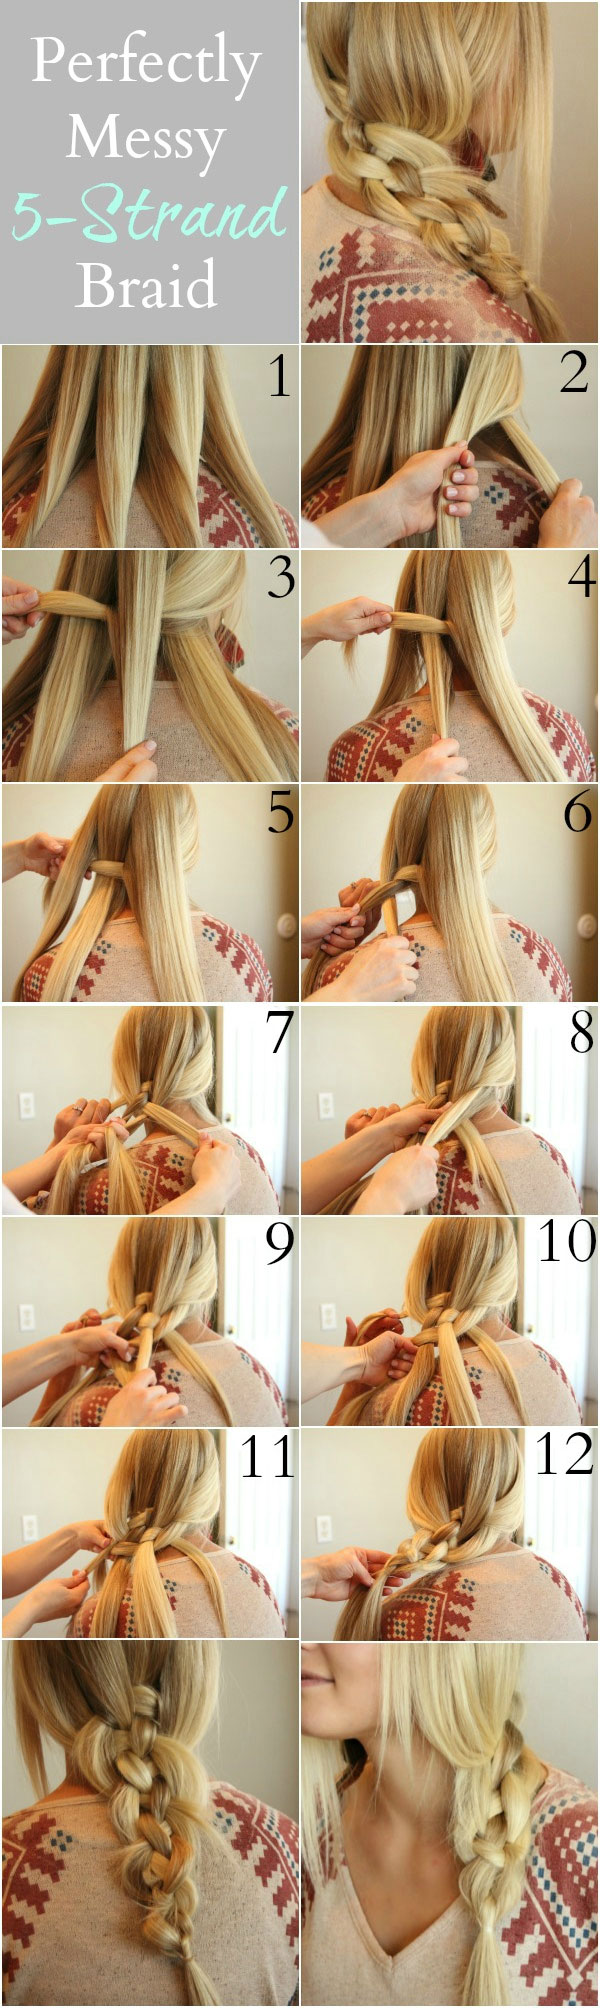 Easy Five Strand Braid Tutorial - Step By step